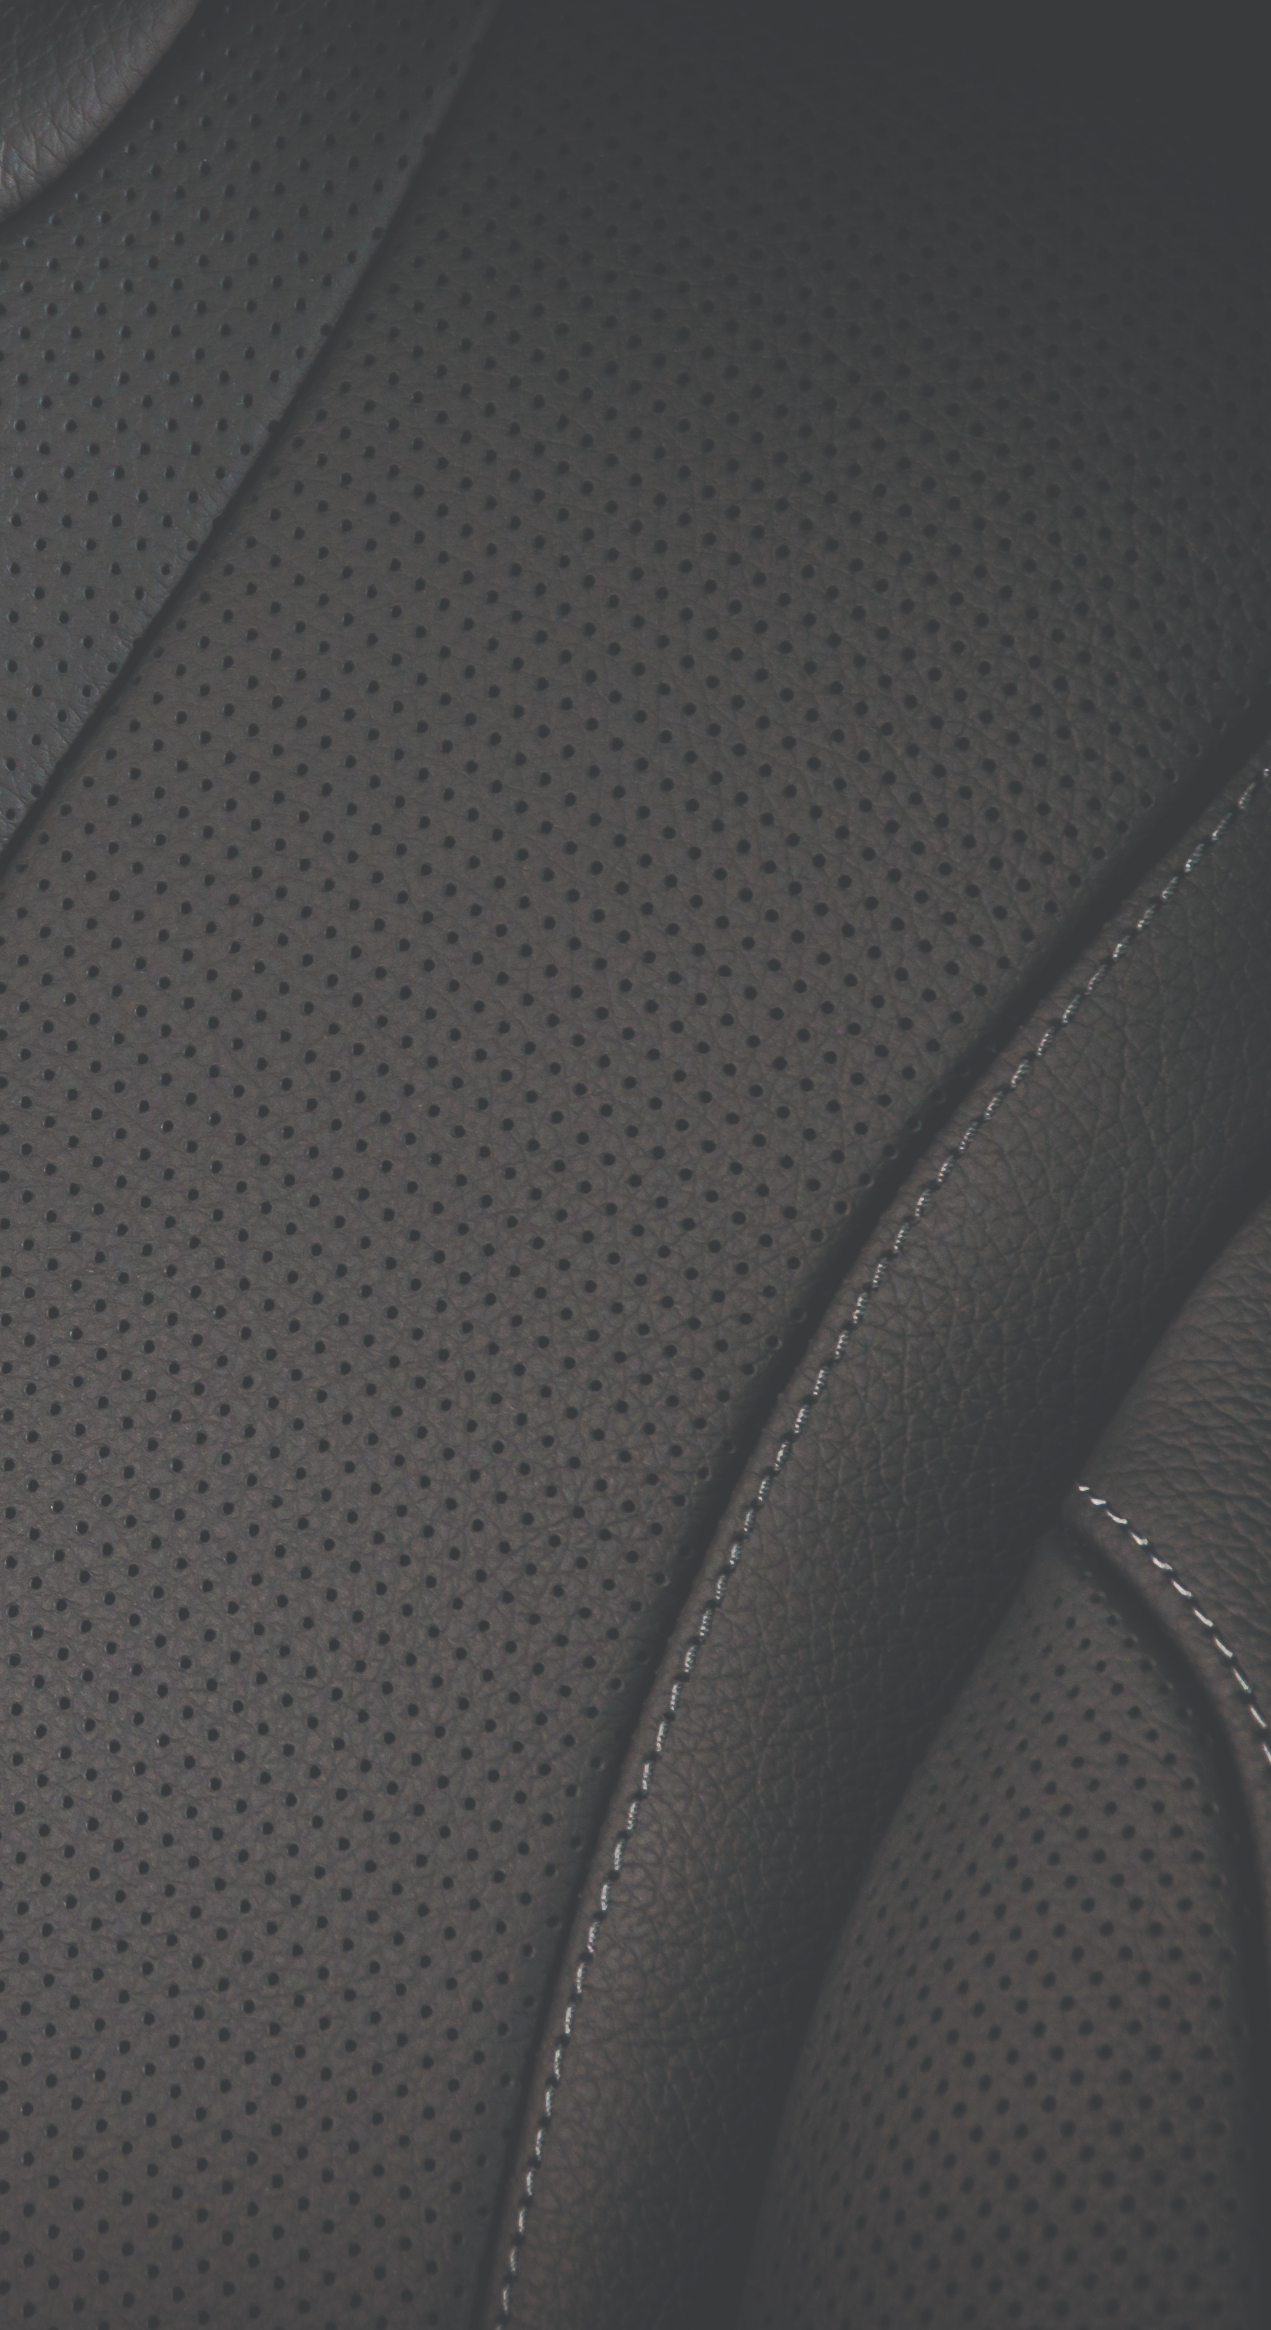 Close Up Of an Automotive Seat